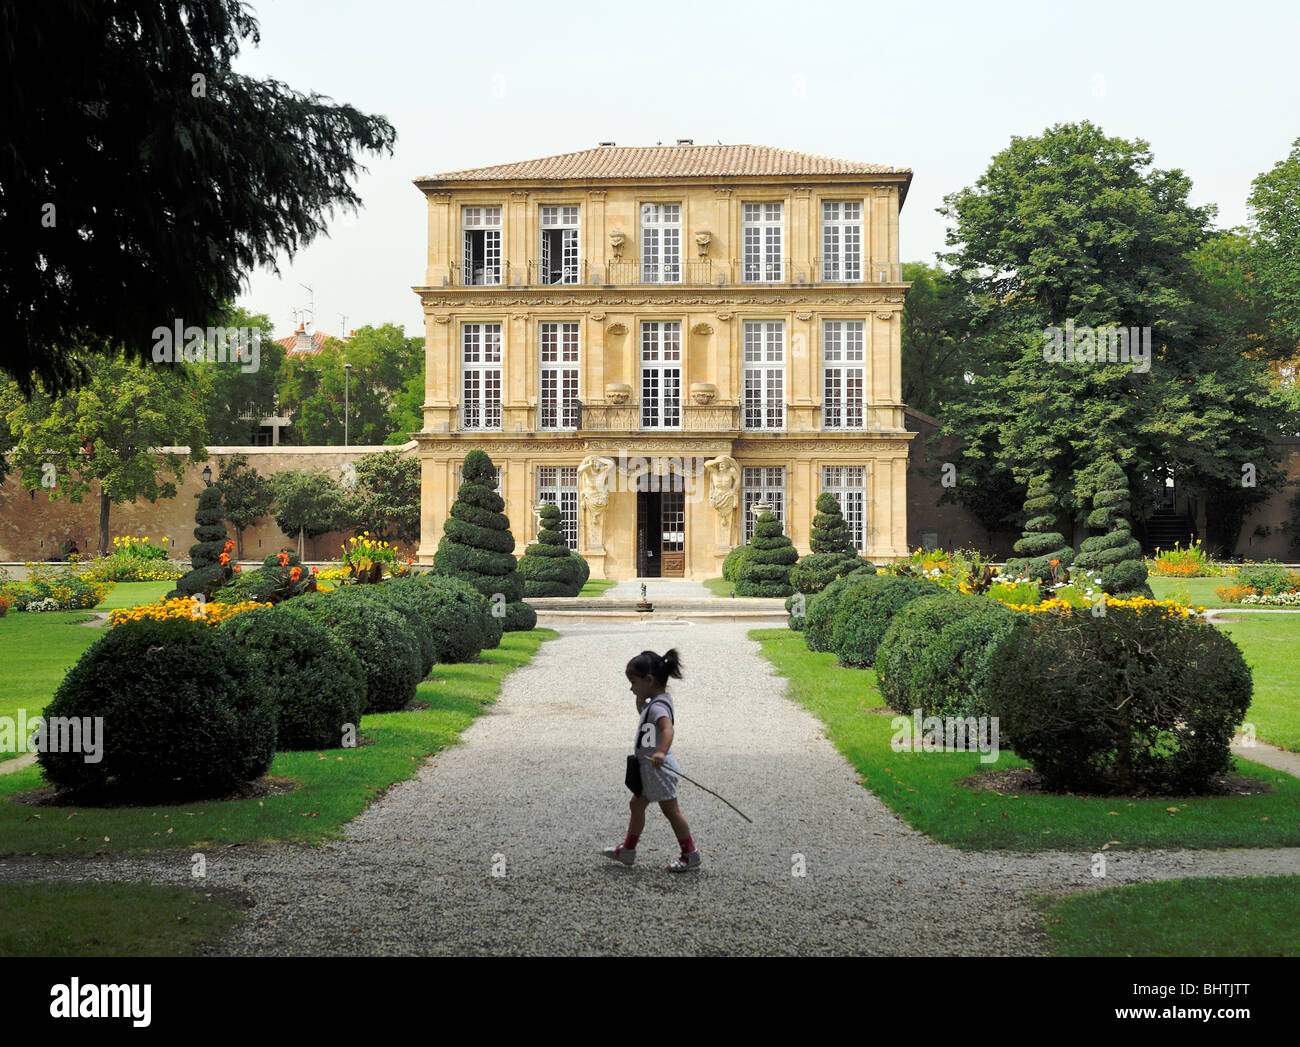 The Musee de Pavillon de Vendome, Aix en Provence, Provence Alpes Cote d'Azur, France. 18 Century French town - Stock Image